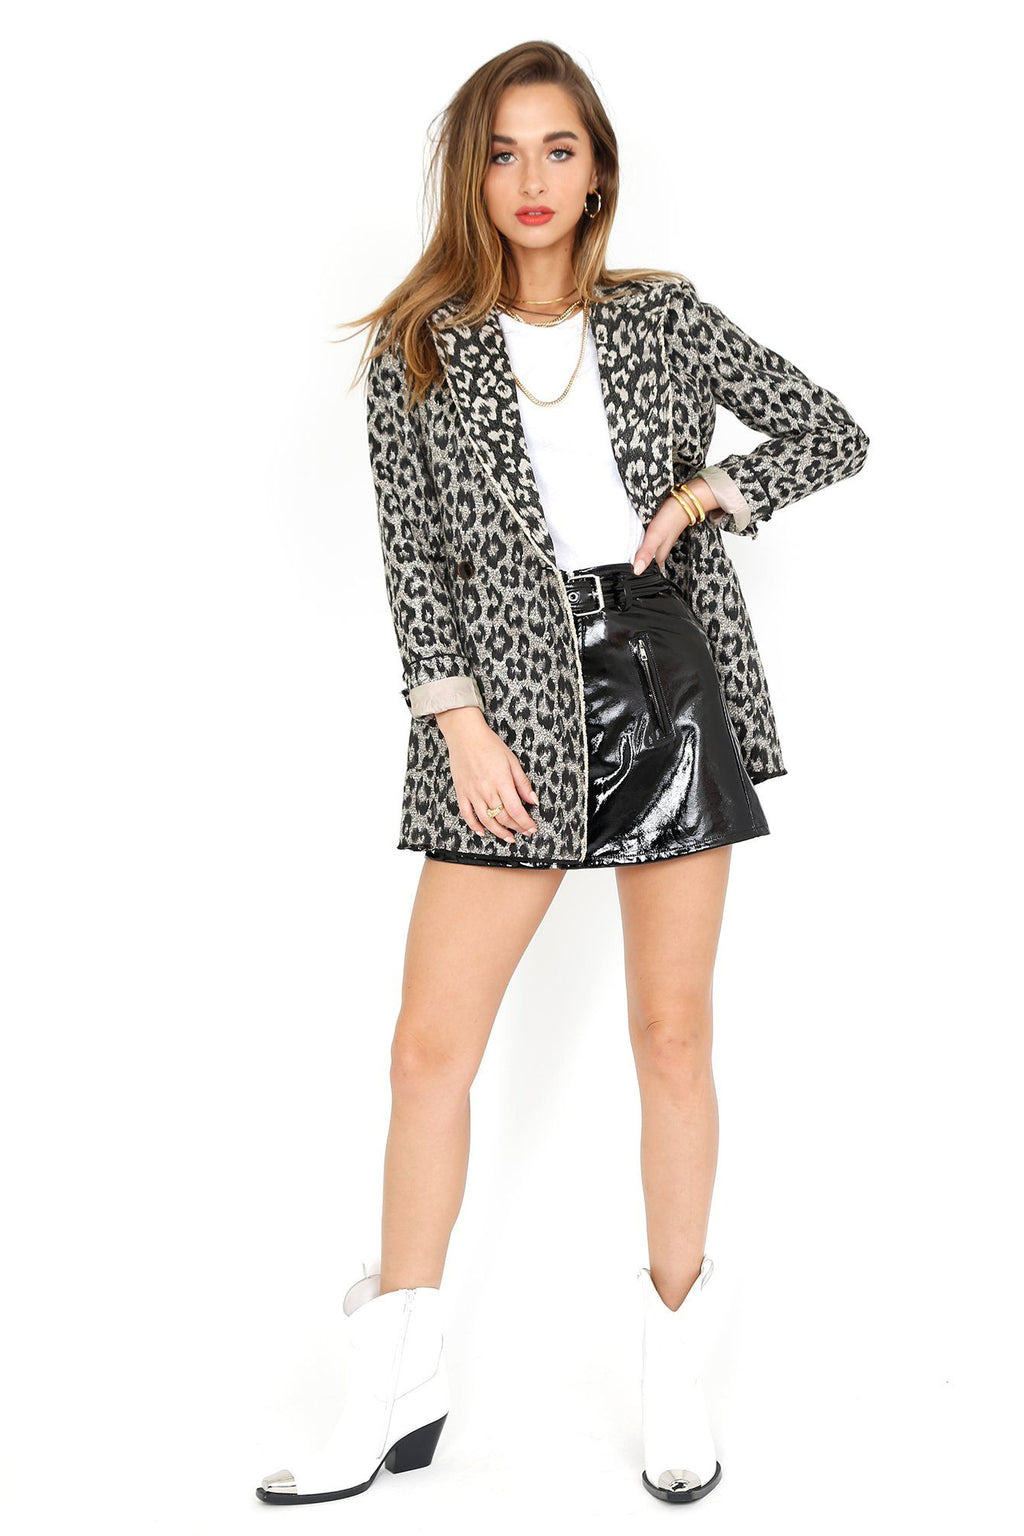 LE SUPERBE | Mrs. Setzer Jacket Dress - Leopard Jacquard